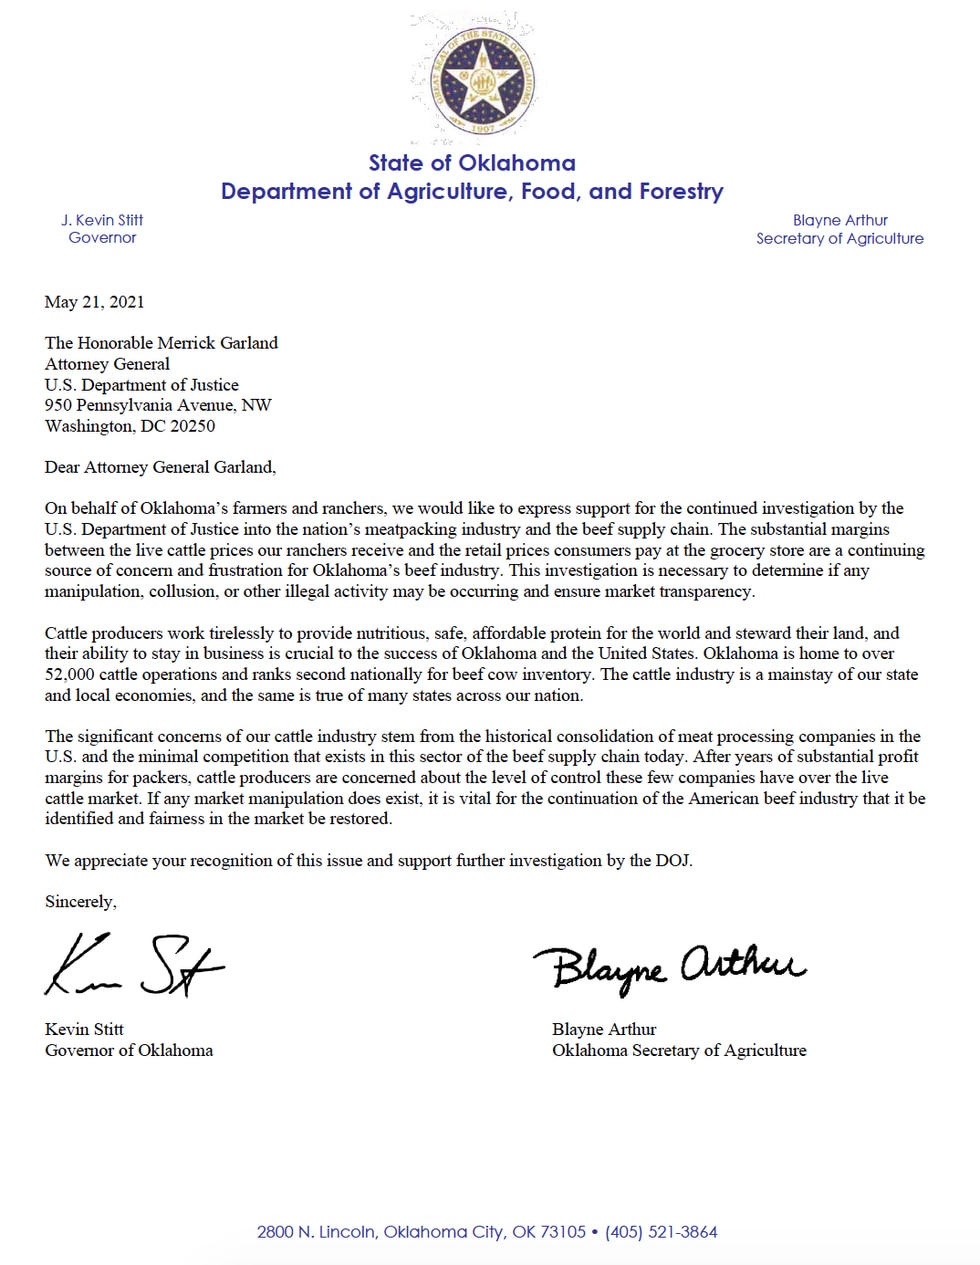 In his letter Governor Stitt defends the agriculture industry, standing up for local farmers...